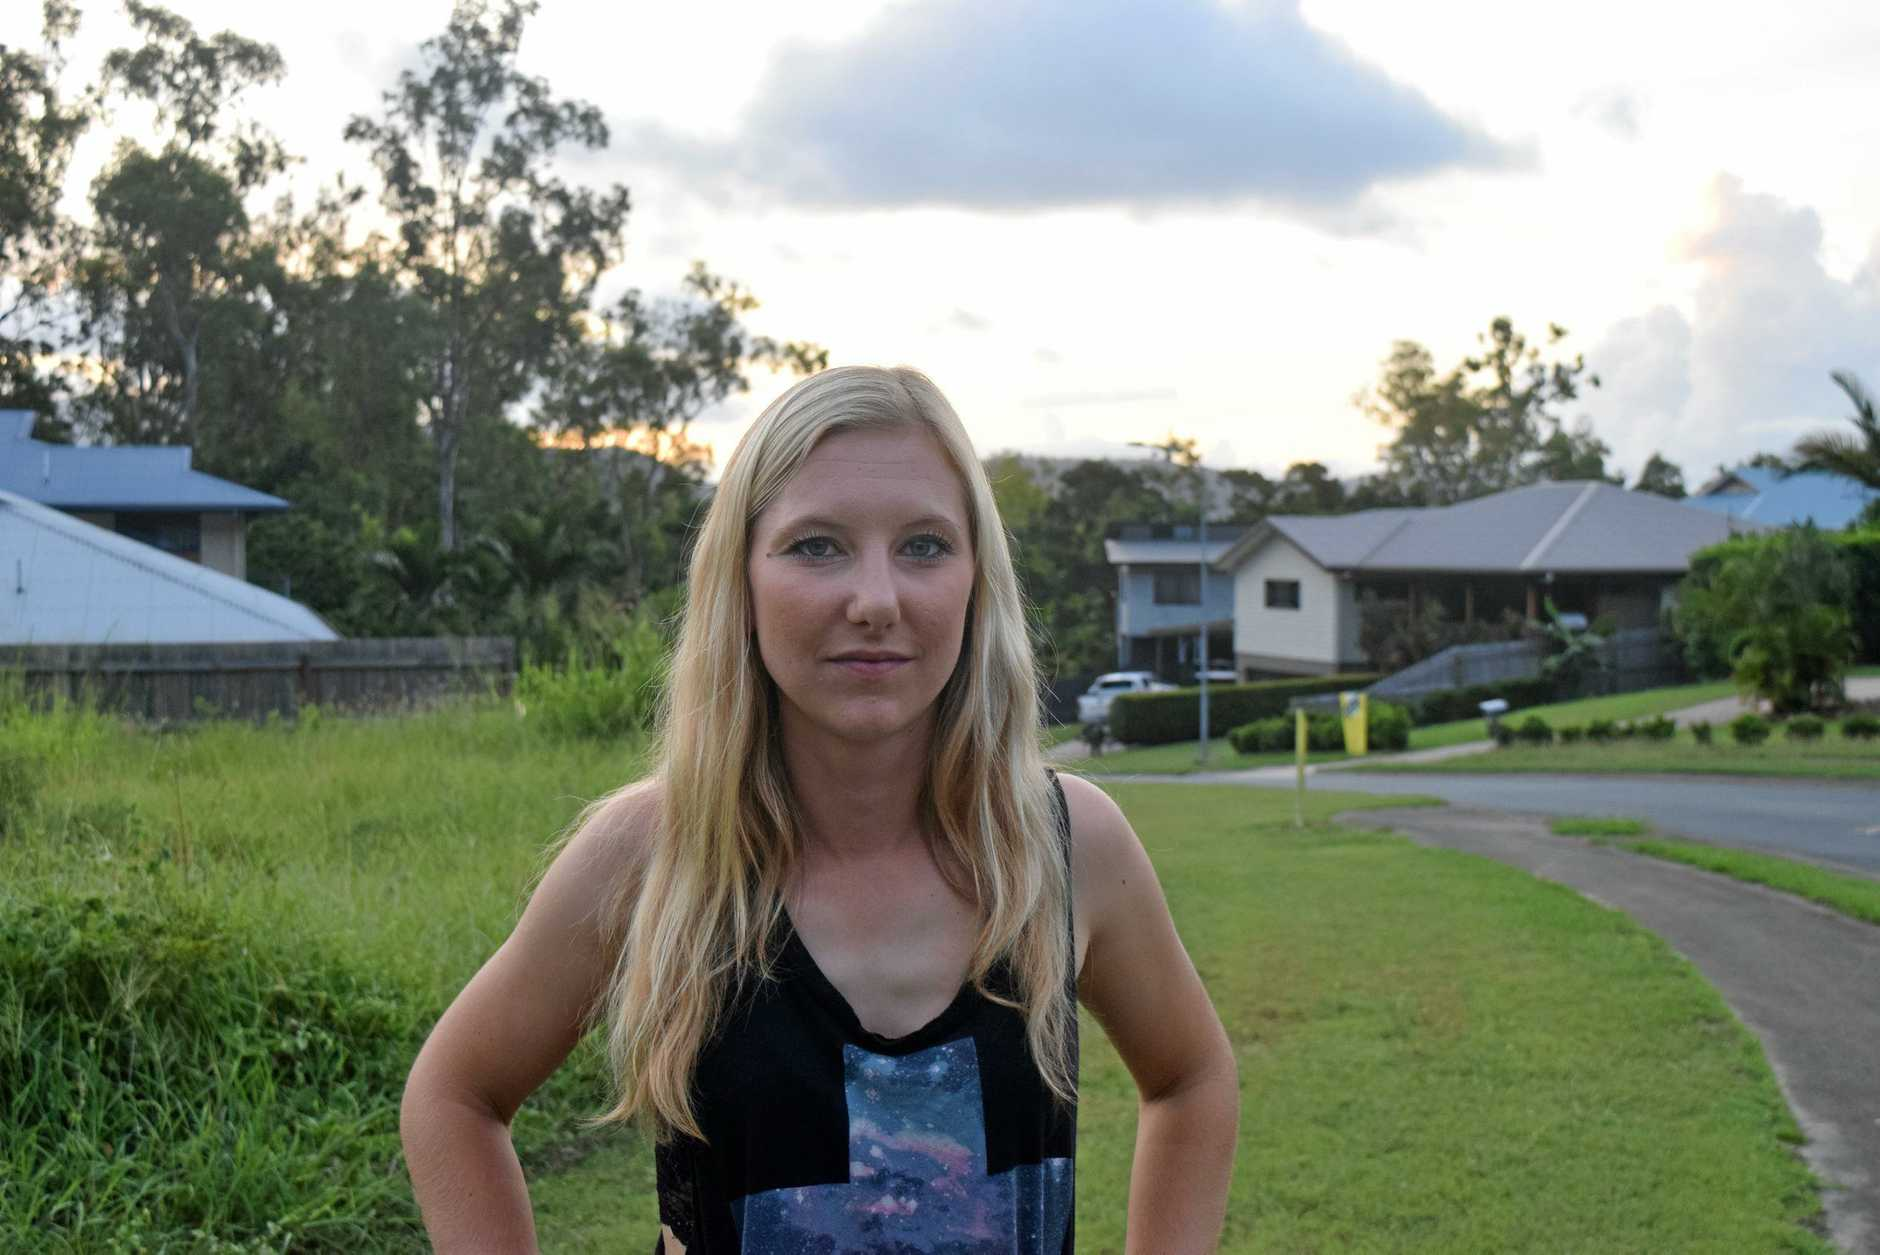 WILD WELCOME: Sarah Brinkmann arrived in Airlie Beach just days before Cyclone Debbie struck.